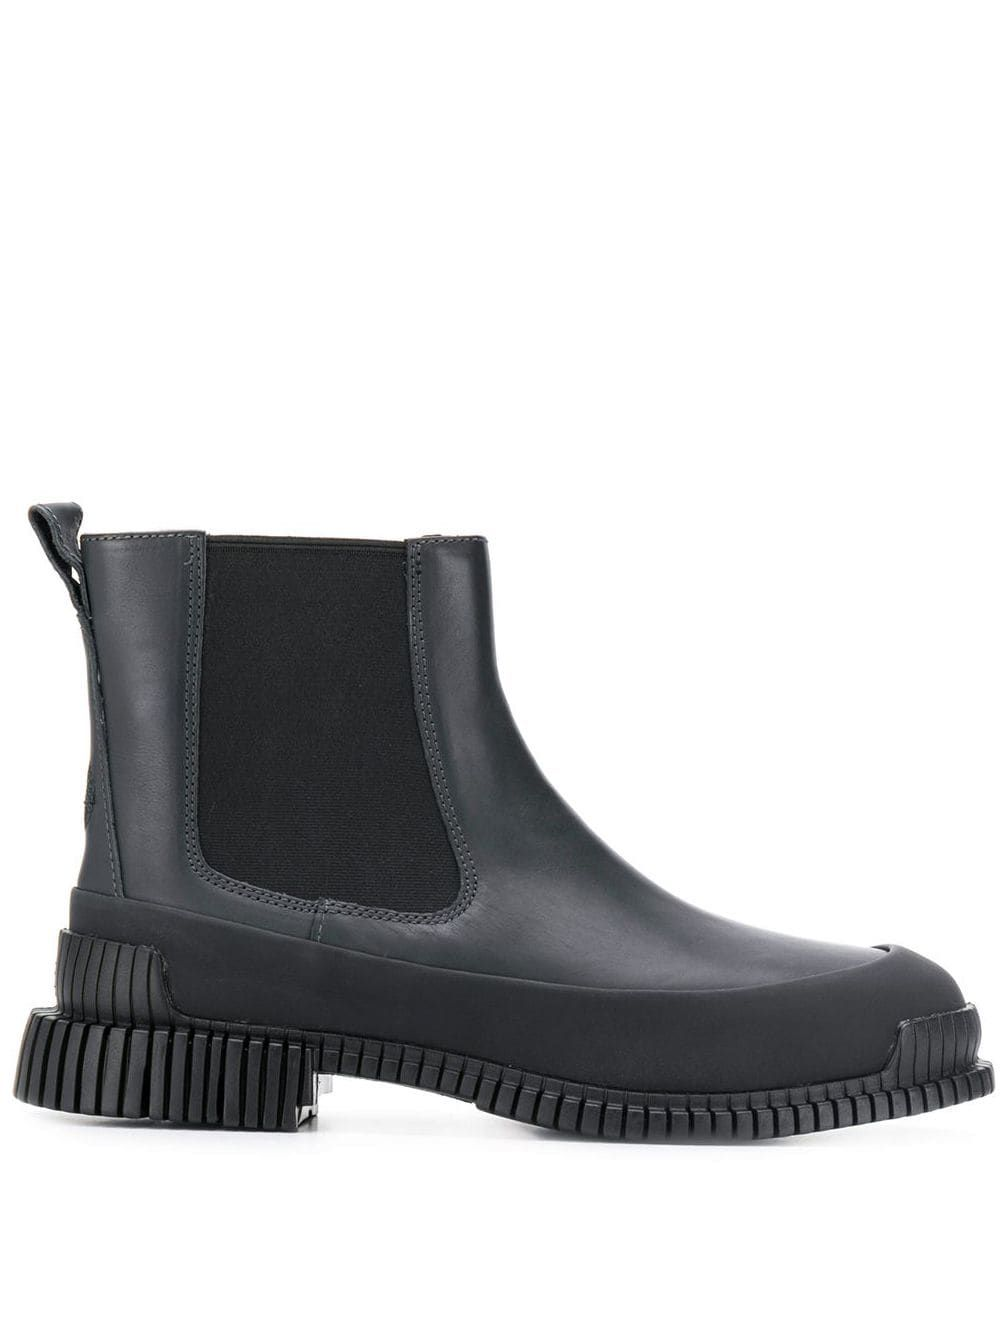 Photo of Camper Ankle Length Boots